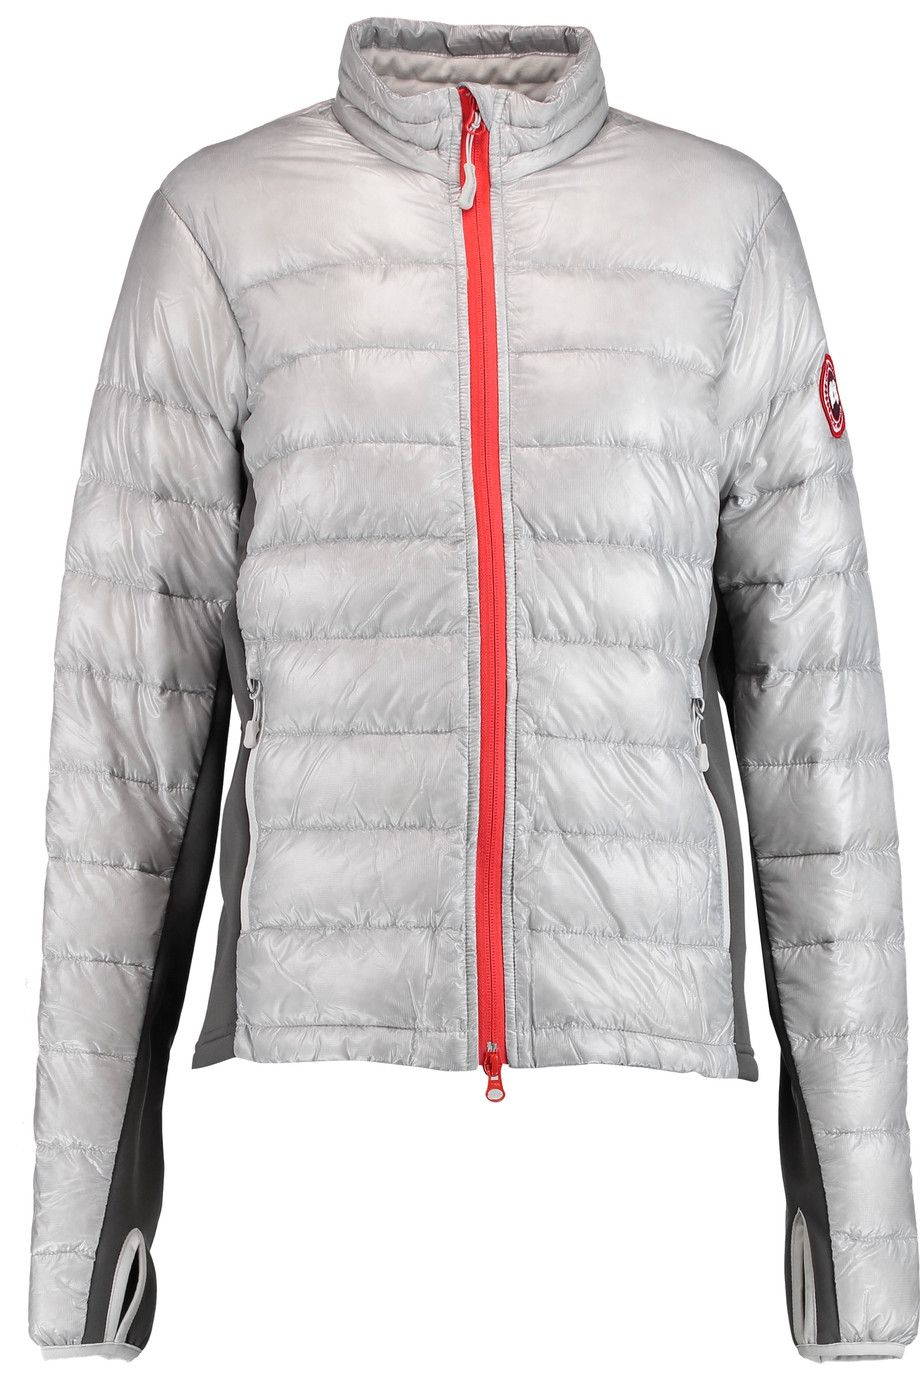 Canada Goose Hybridge Lite Quilted Shell Down Jacket Canadagoose Cloth Jacket Down Jacket Jackets Canada Goose Fashion